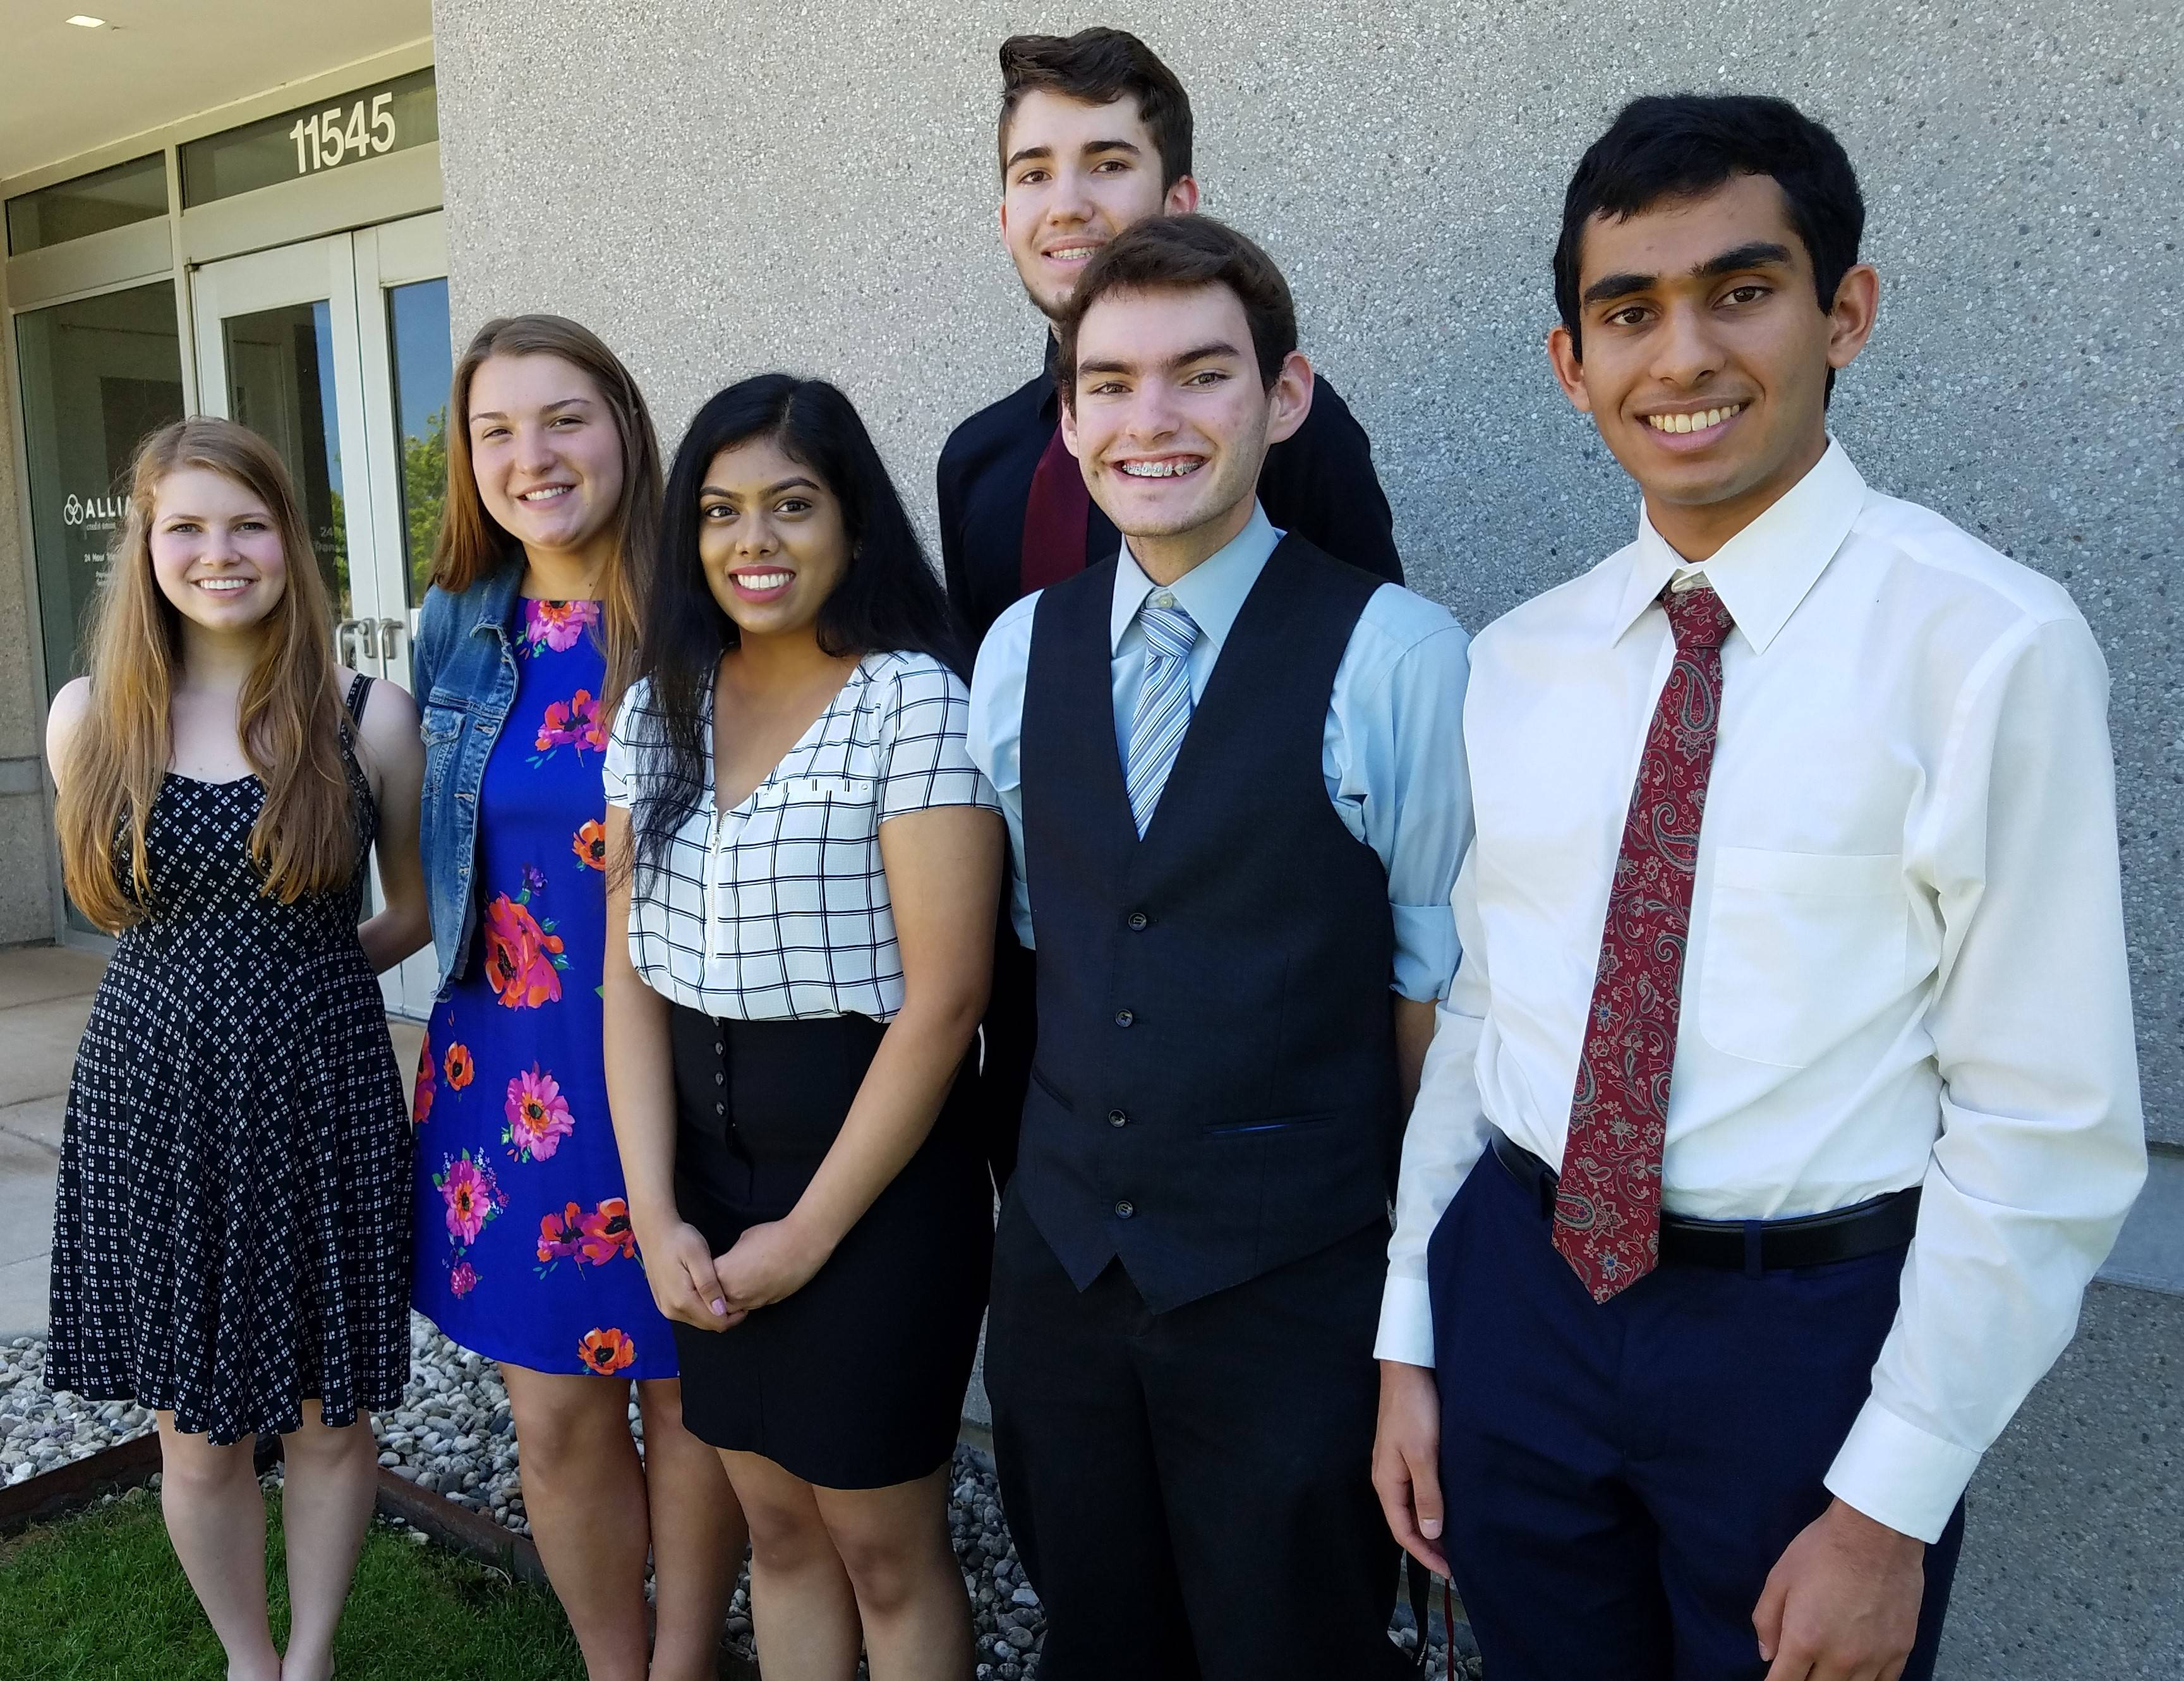 The 2018 recipients for the Des Plaines Community Foundation scholarships are Michael Bilotich, Caty Buchaniec and Bhagirath Mehta from Maine West High School; Hazel Patel from Maine East High School, and Hannah Siebert from Elk Grove High School. Zack Nelson received the Sadie Rose Leadership Award.